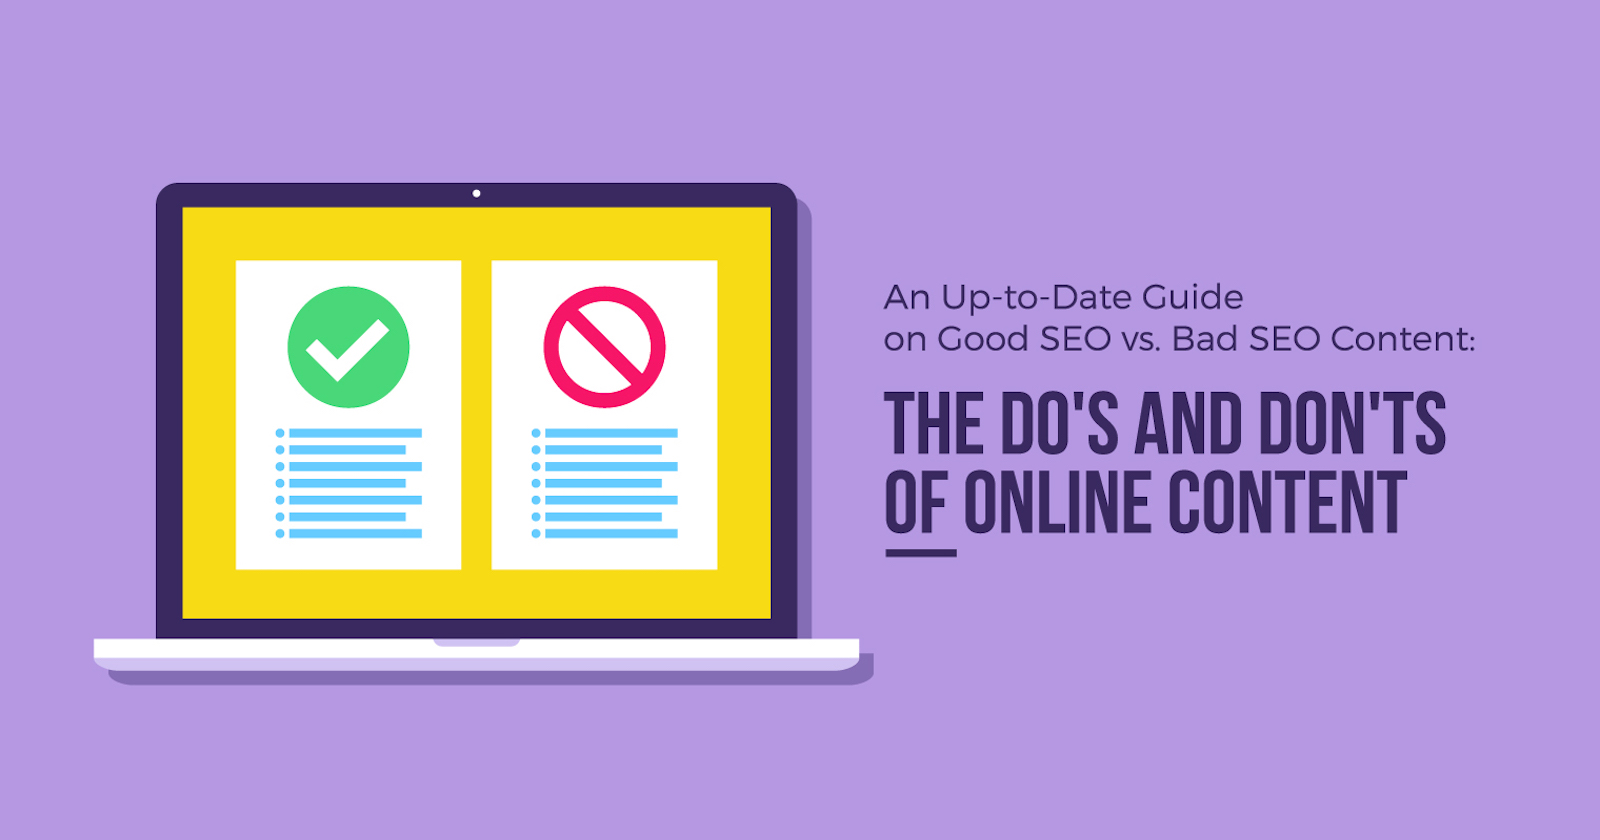 An Up-to-Date Guide on Good SEO Content vs. Bad SEO Content by @JuliaEMcCoy